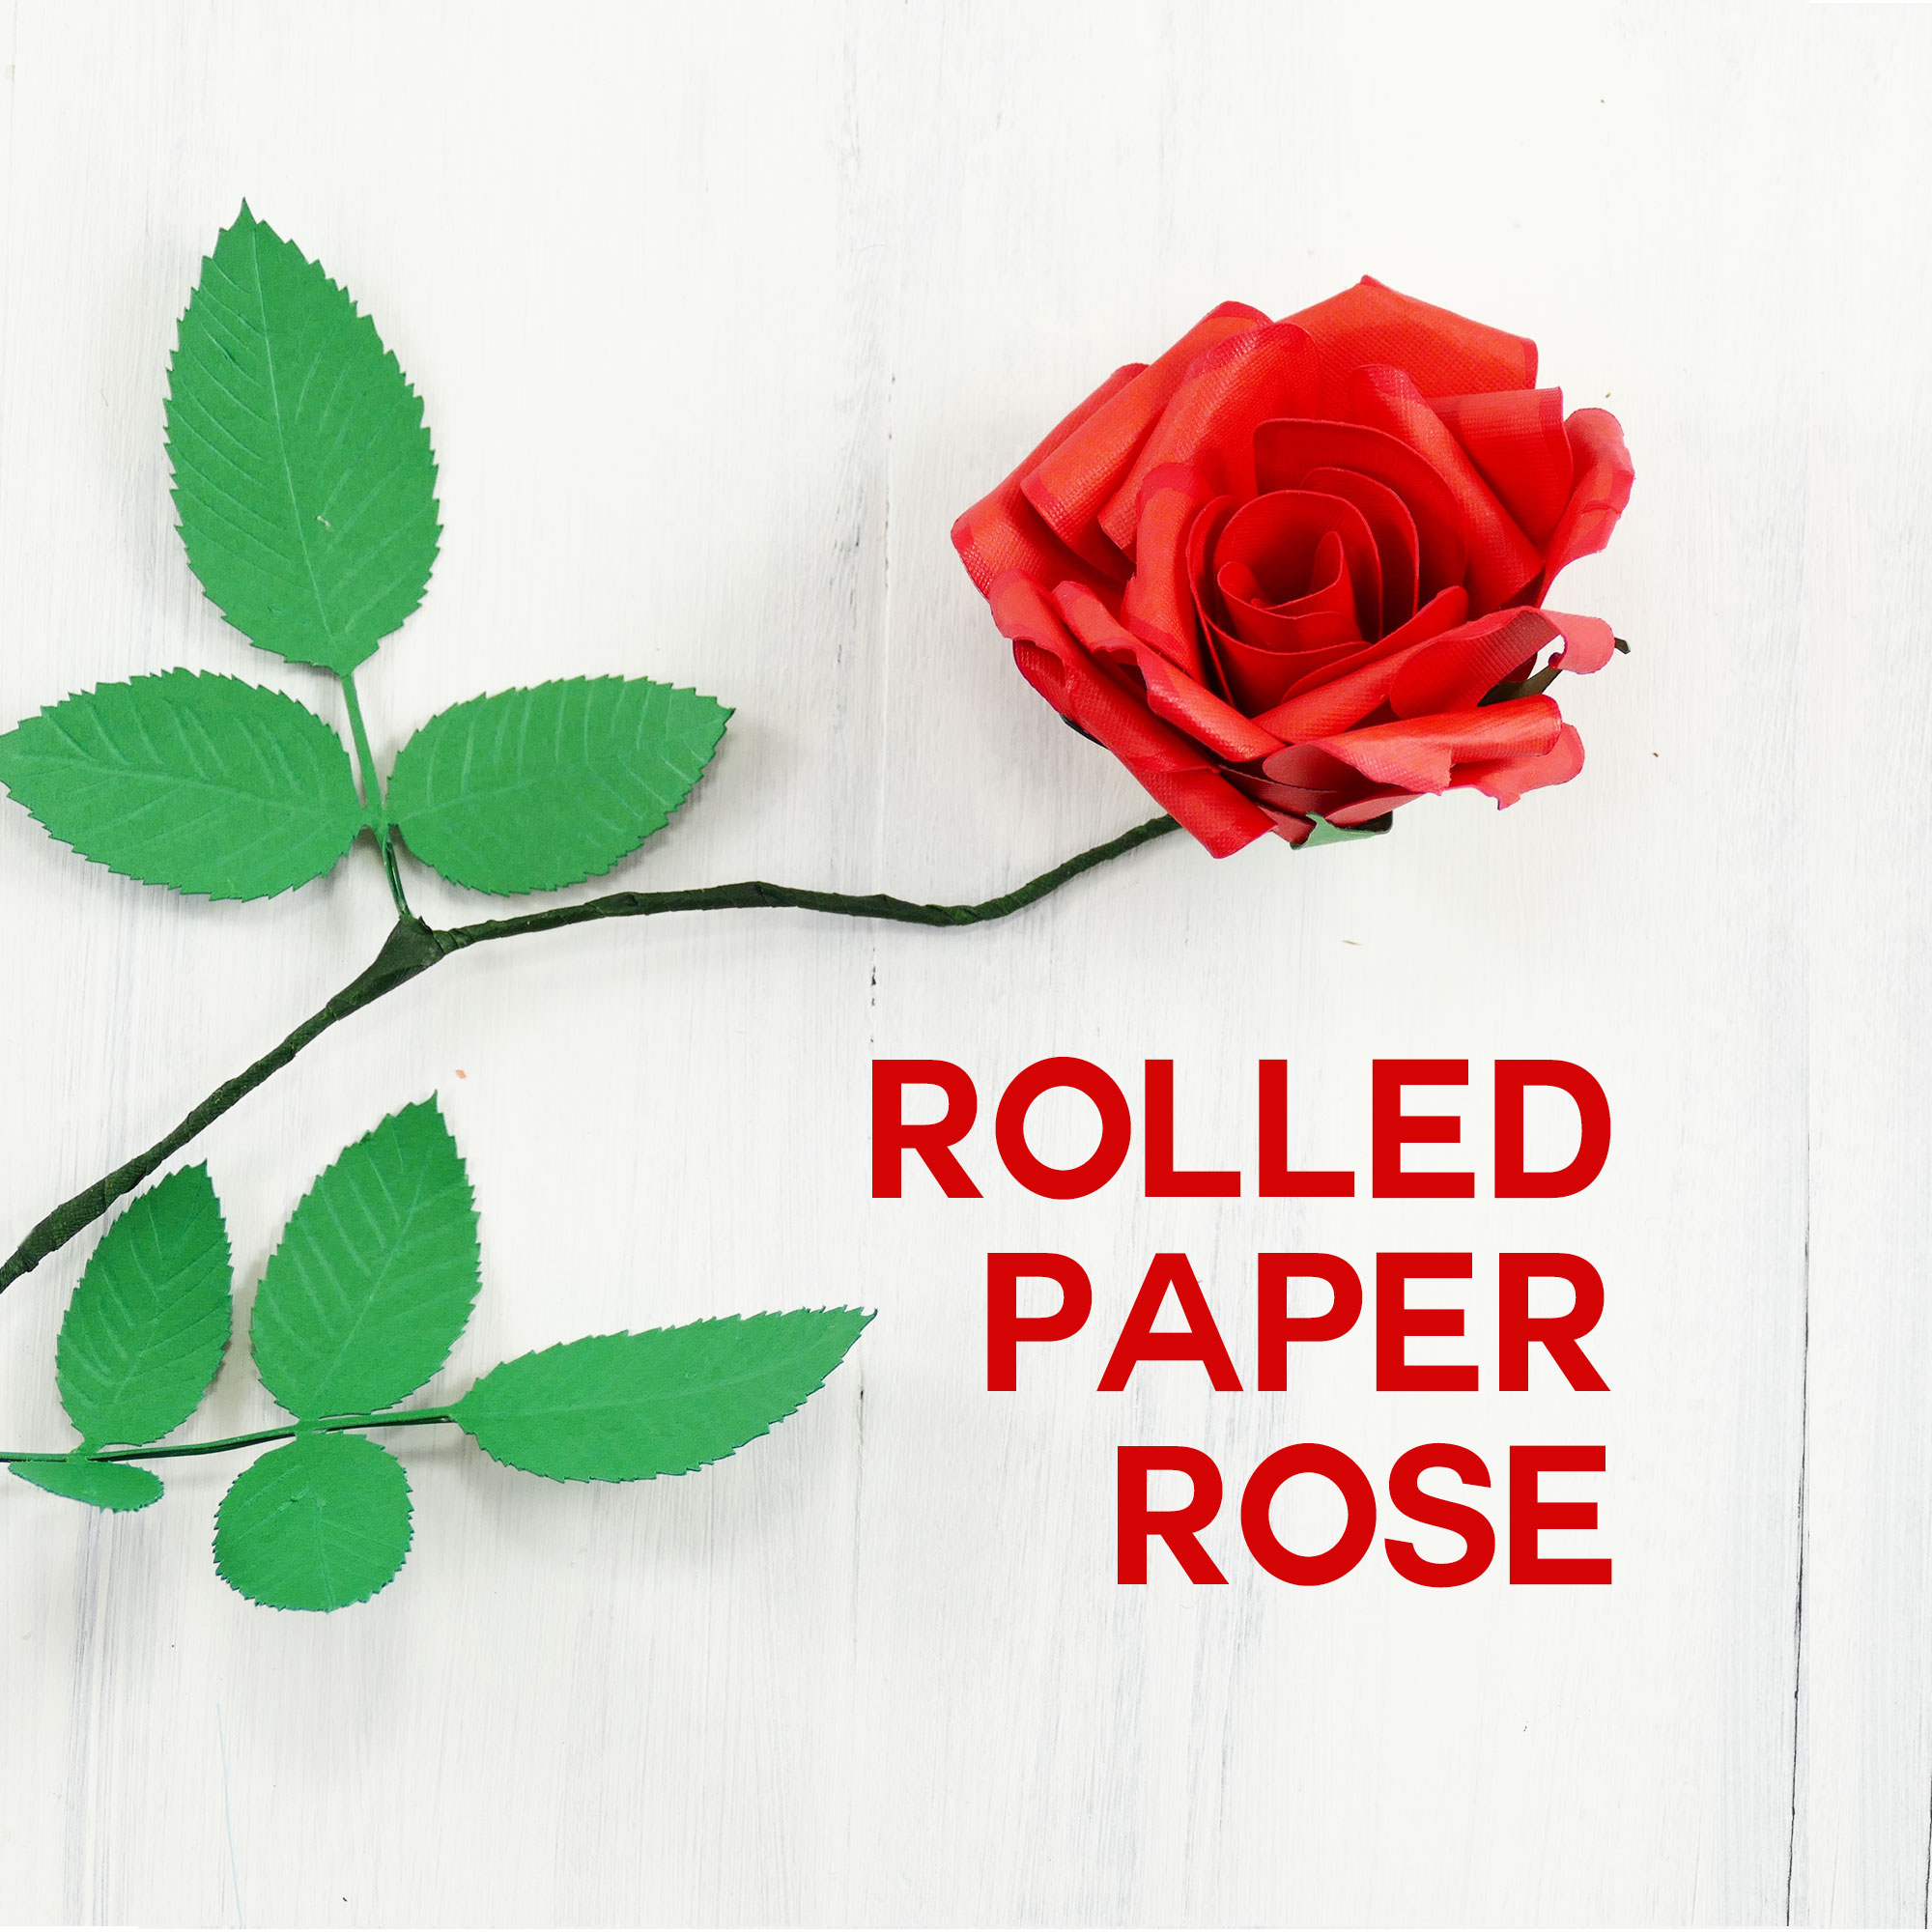 Peculiar Roses Help Me Find Help Me Find Roses Search Rolled Paper Rose Flower Quilled Flower Rolled Paper Rose Tutorial Jennifer Maker Tournament houzz-03 Help Me Find Roses